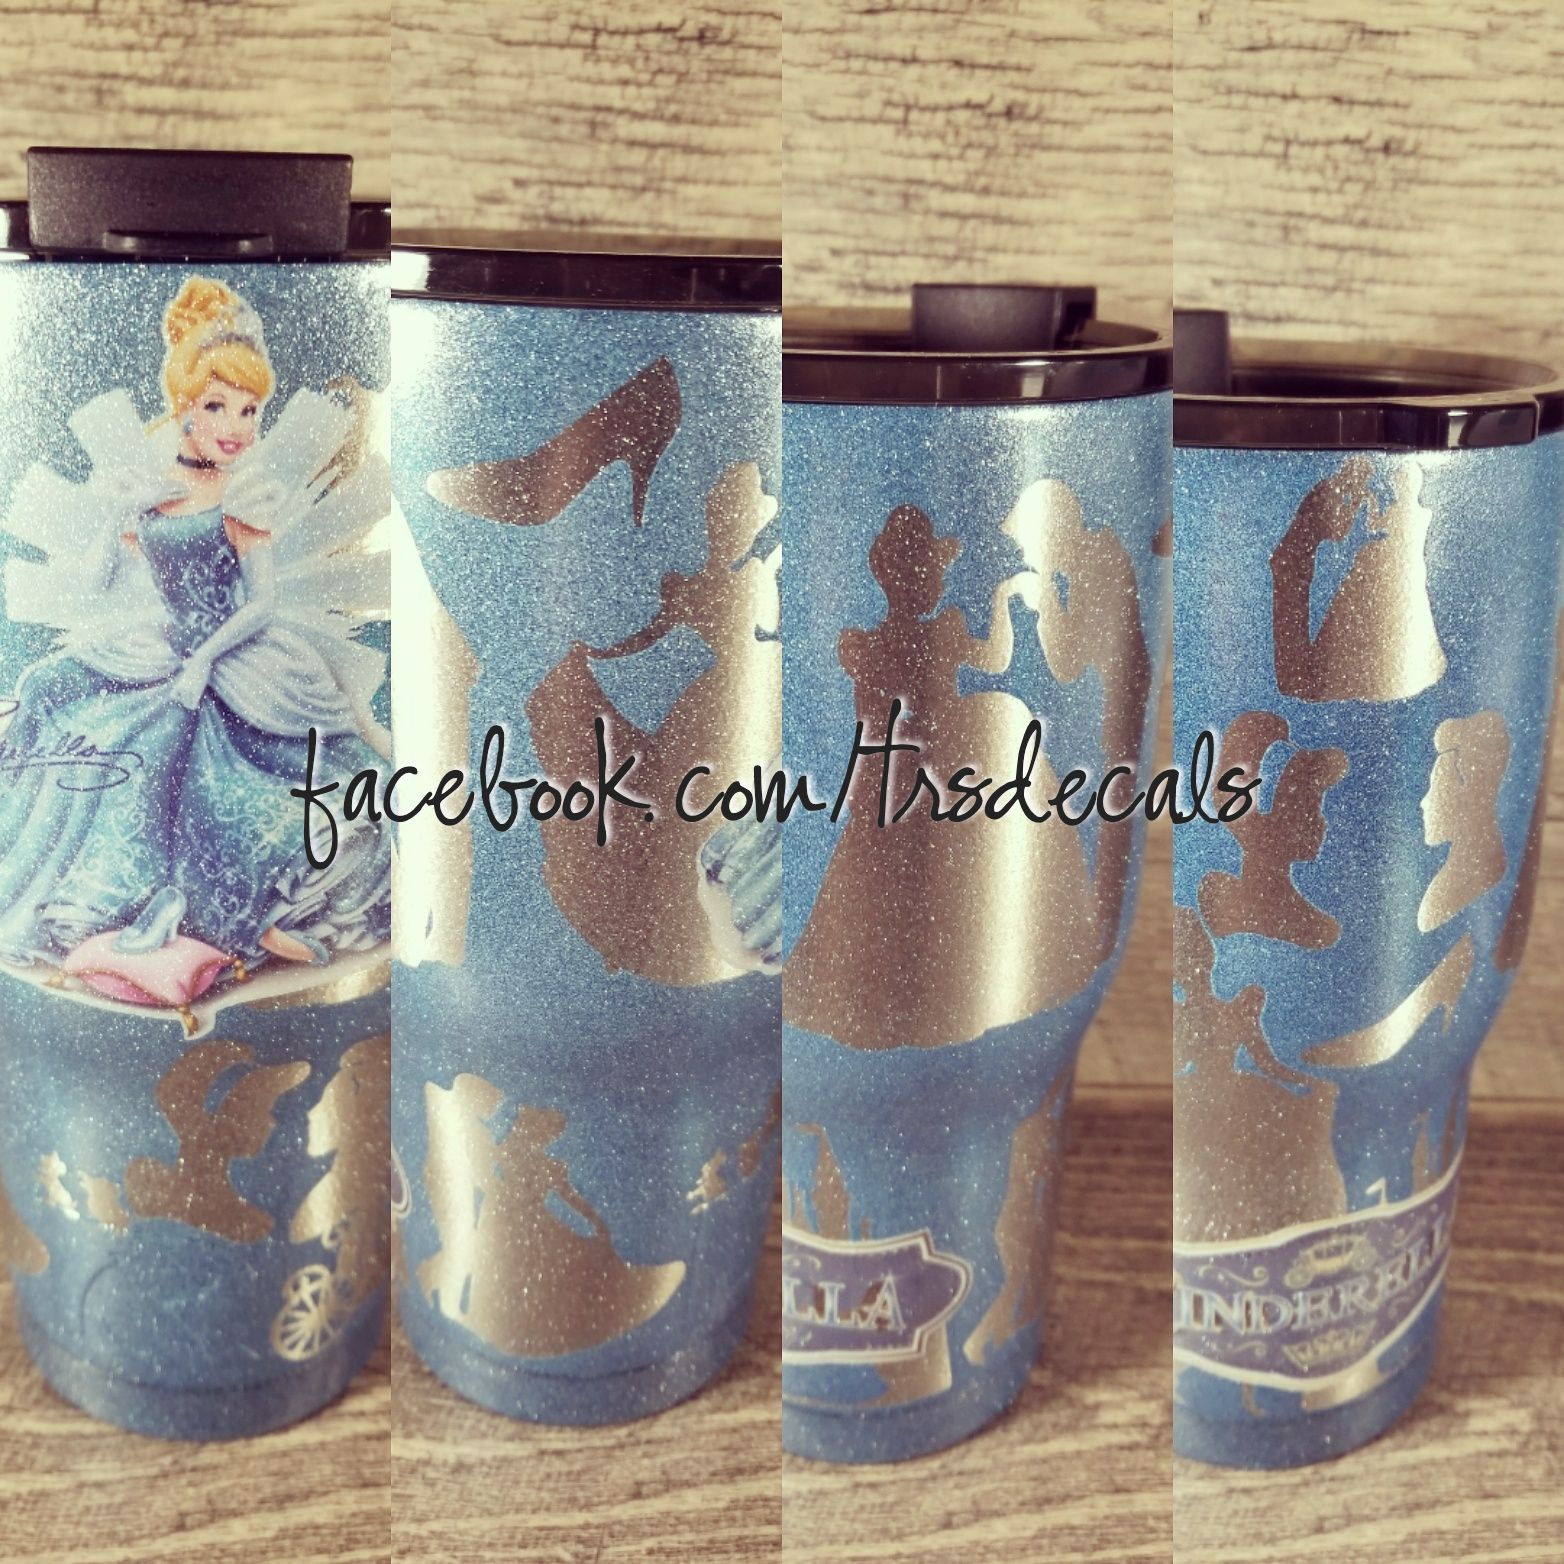 92a66dec8e6 Personalized custom Cinderella yeti/rtic/ozark cup. Custom Cinderella cup.  Stainless steel tumbler cup. Powder coated design.